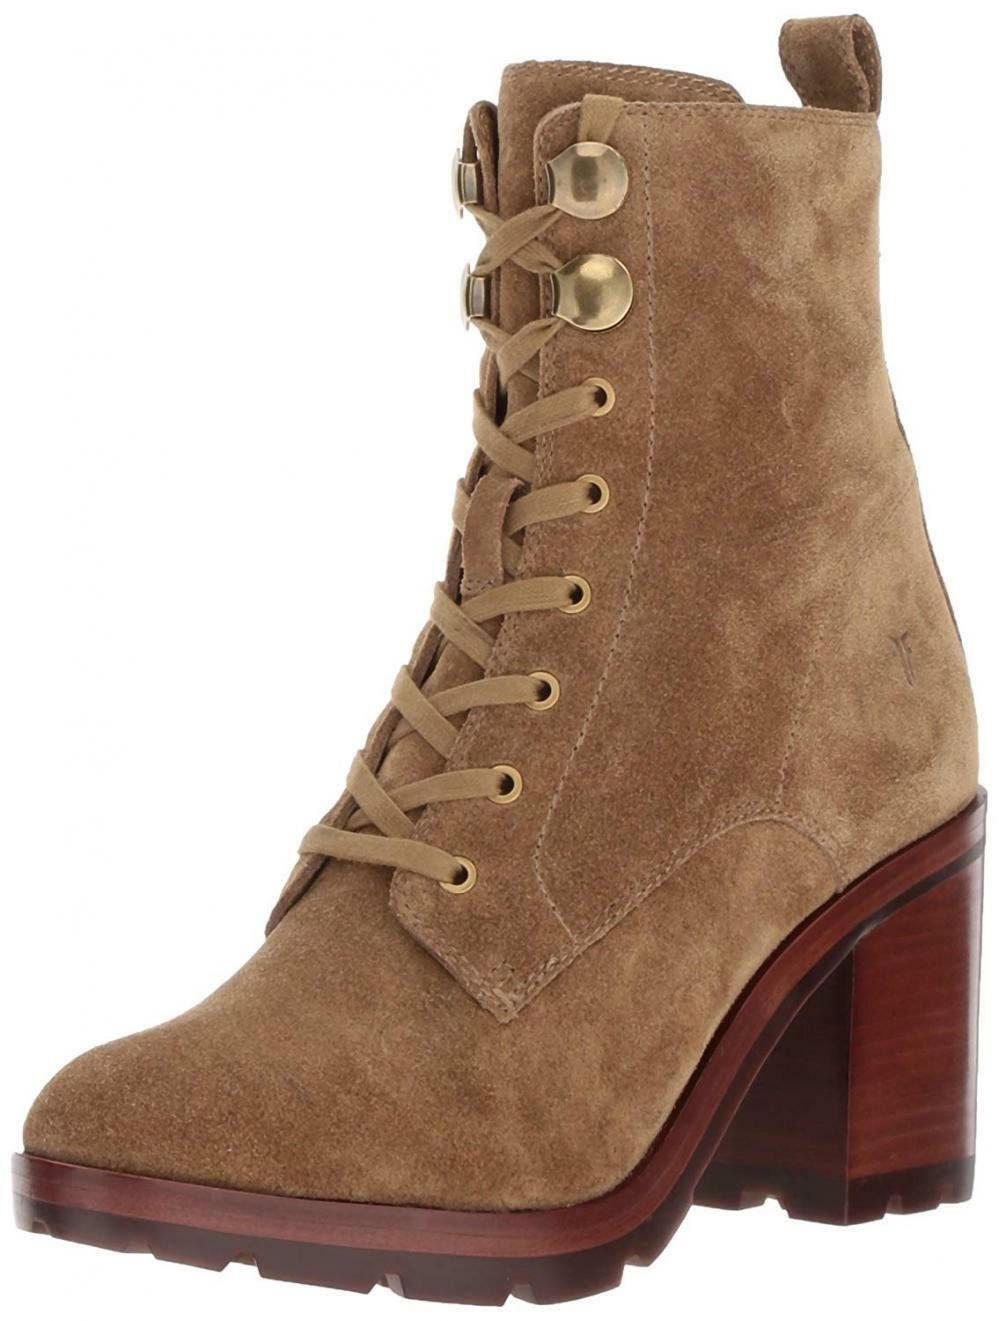 Men's/Women's FRYE Women's Myra Lug Combat Boot Practical and economical luxurious best seller